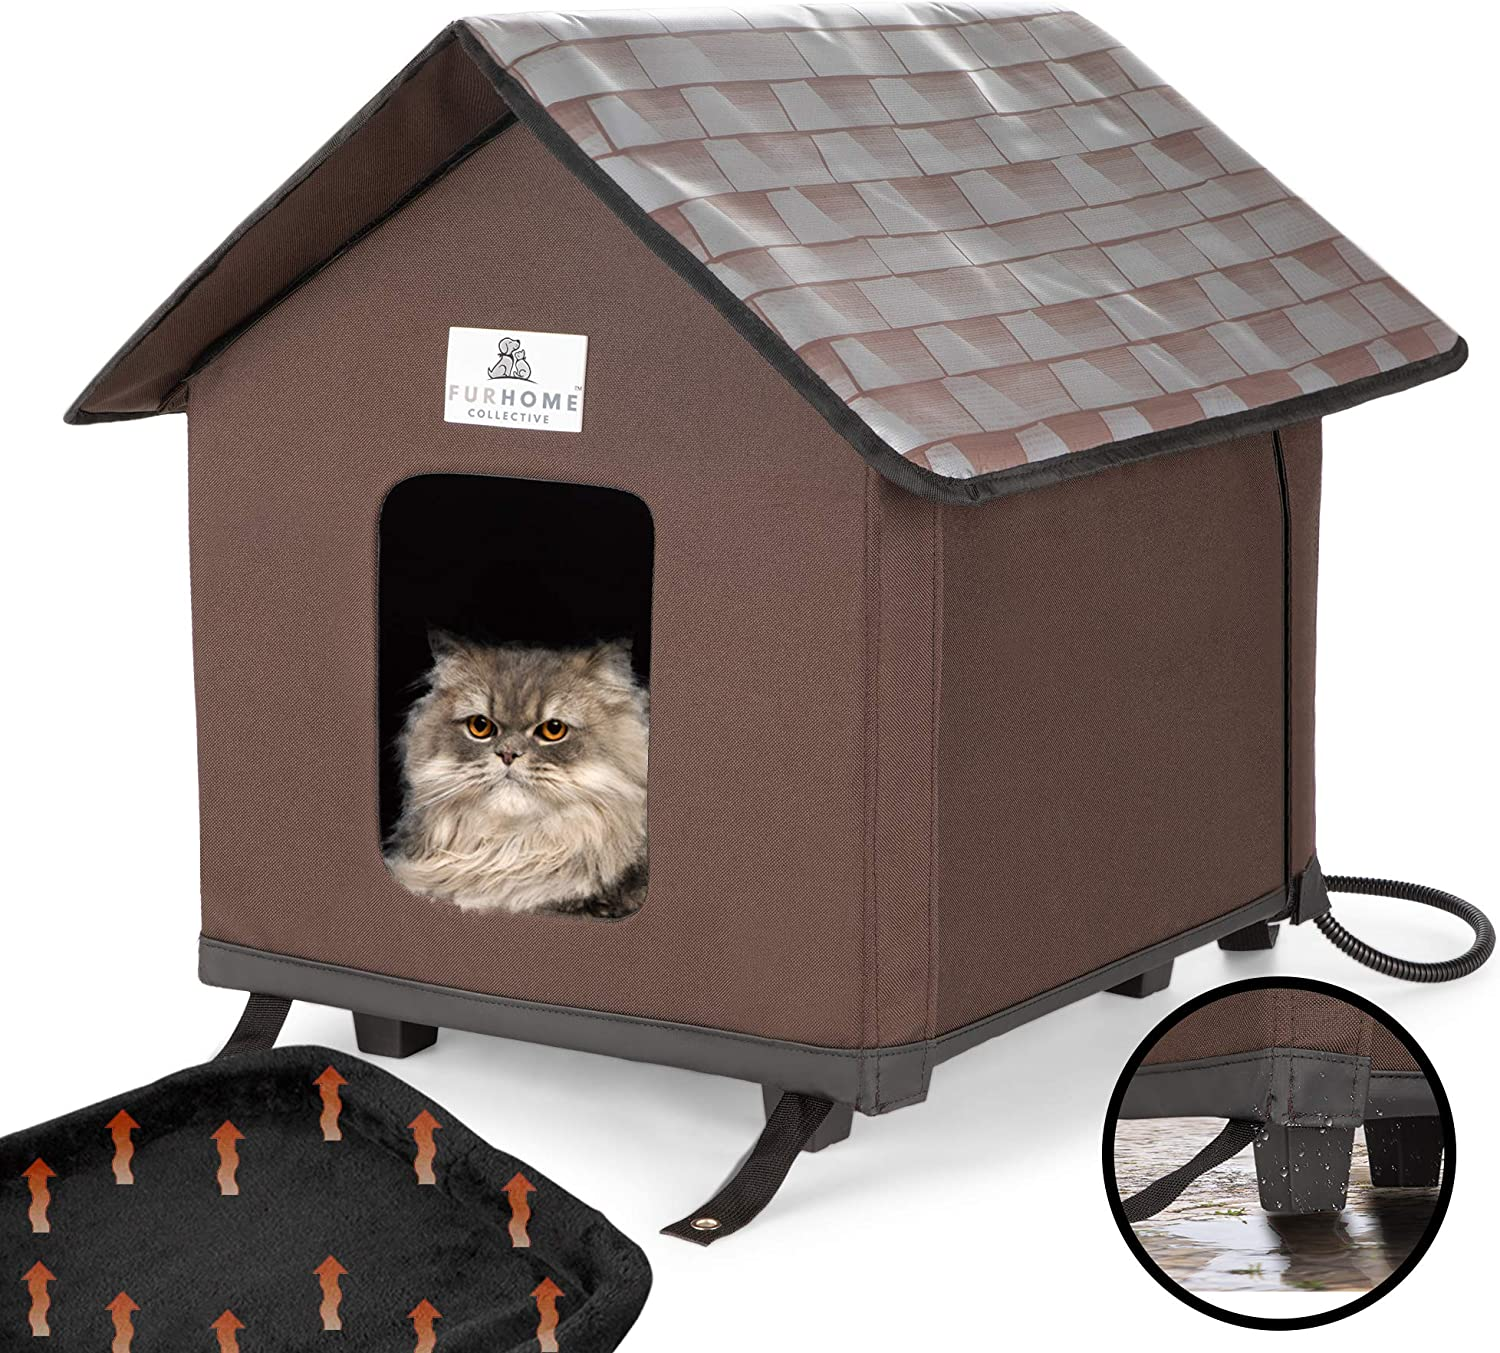 Furhome Collective Heated Cat Houses For Indoor Cats Elevated Waterproof And Insulated A Safe Pet House And Kitty Shelter For Your Cat Or Small Dog To Stay Warm Dry Amazon Ca